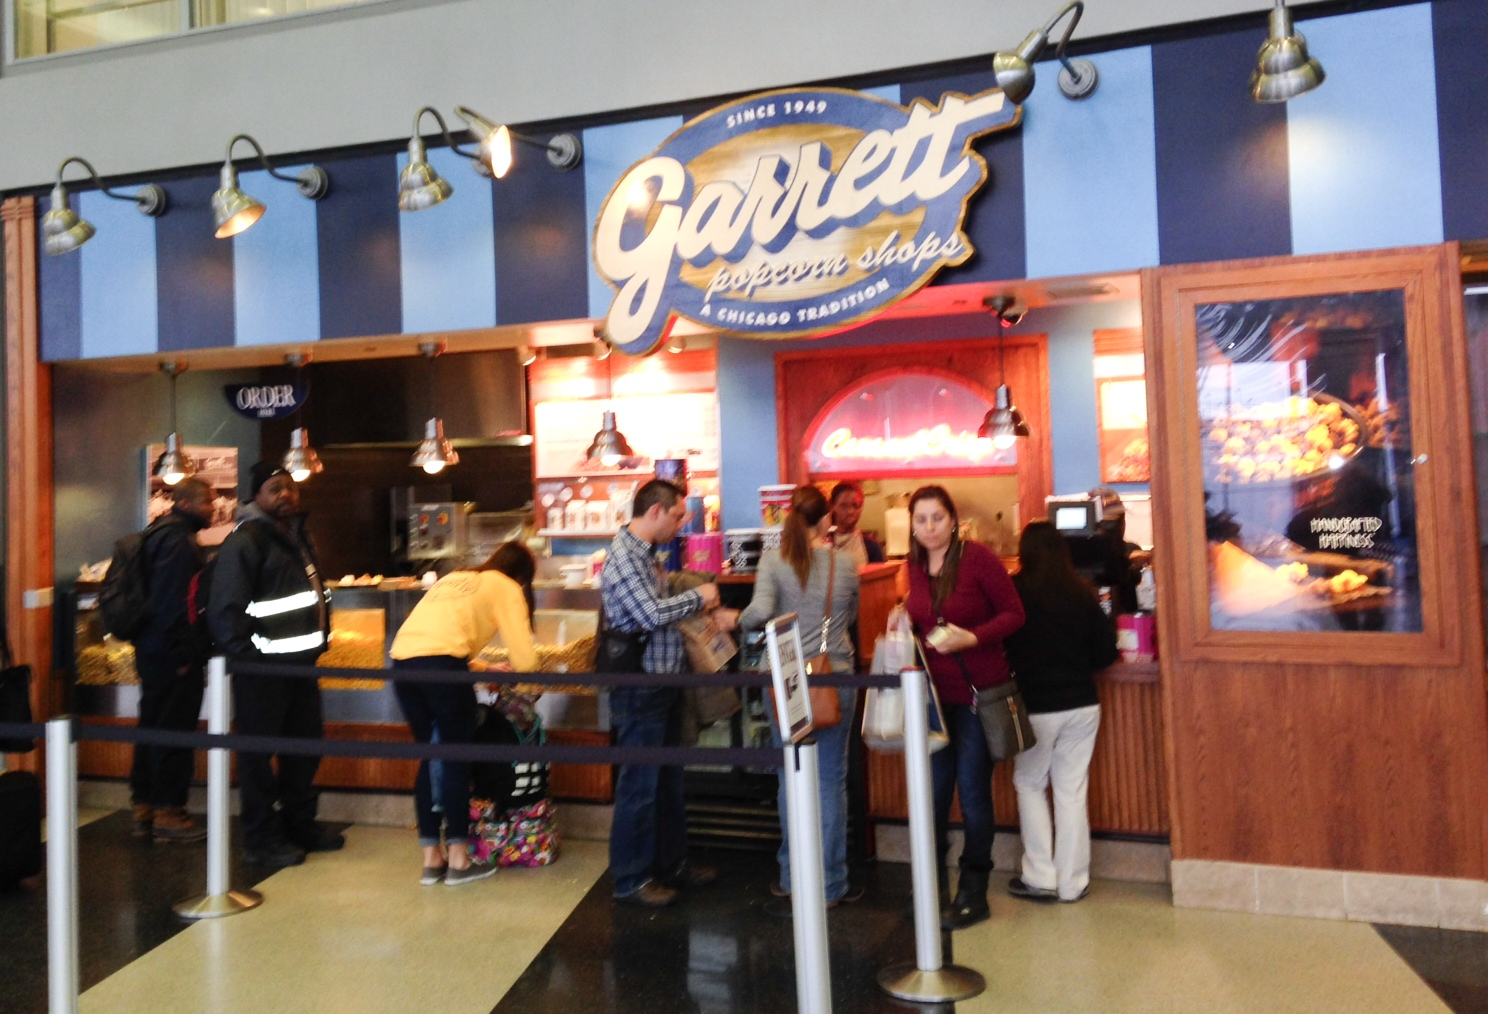 Not getting some Garrett's Popcorn is not an option!